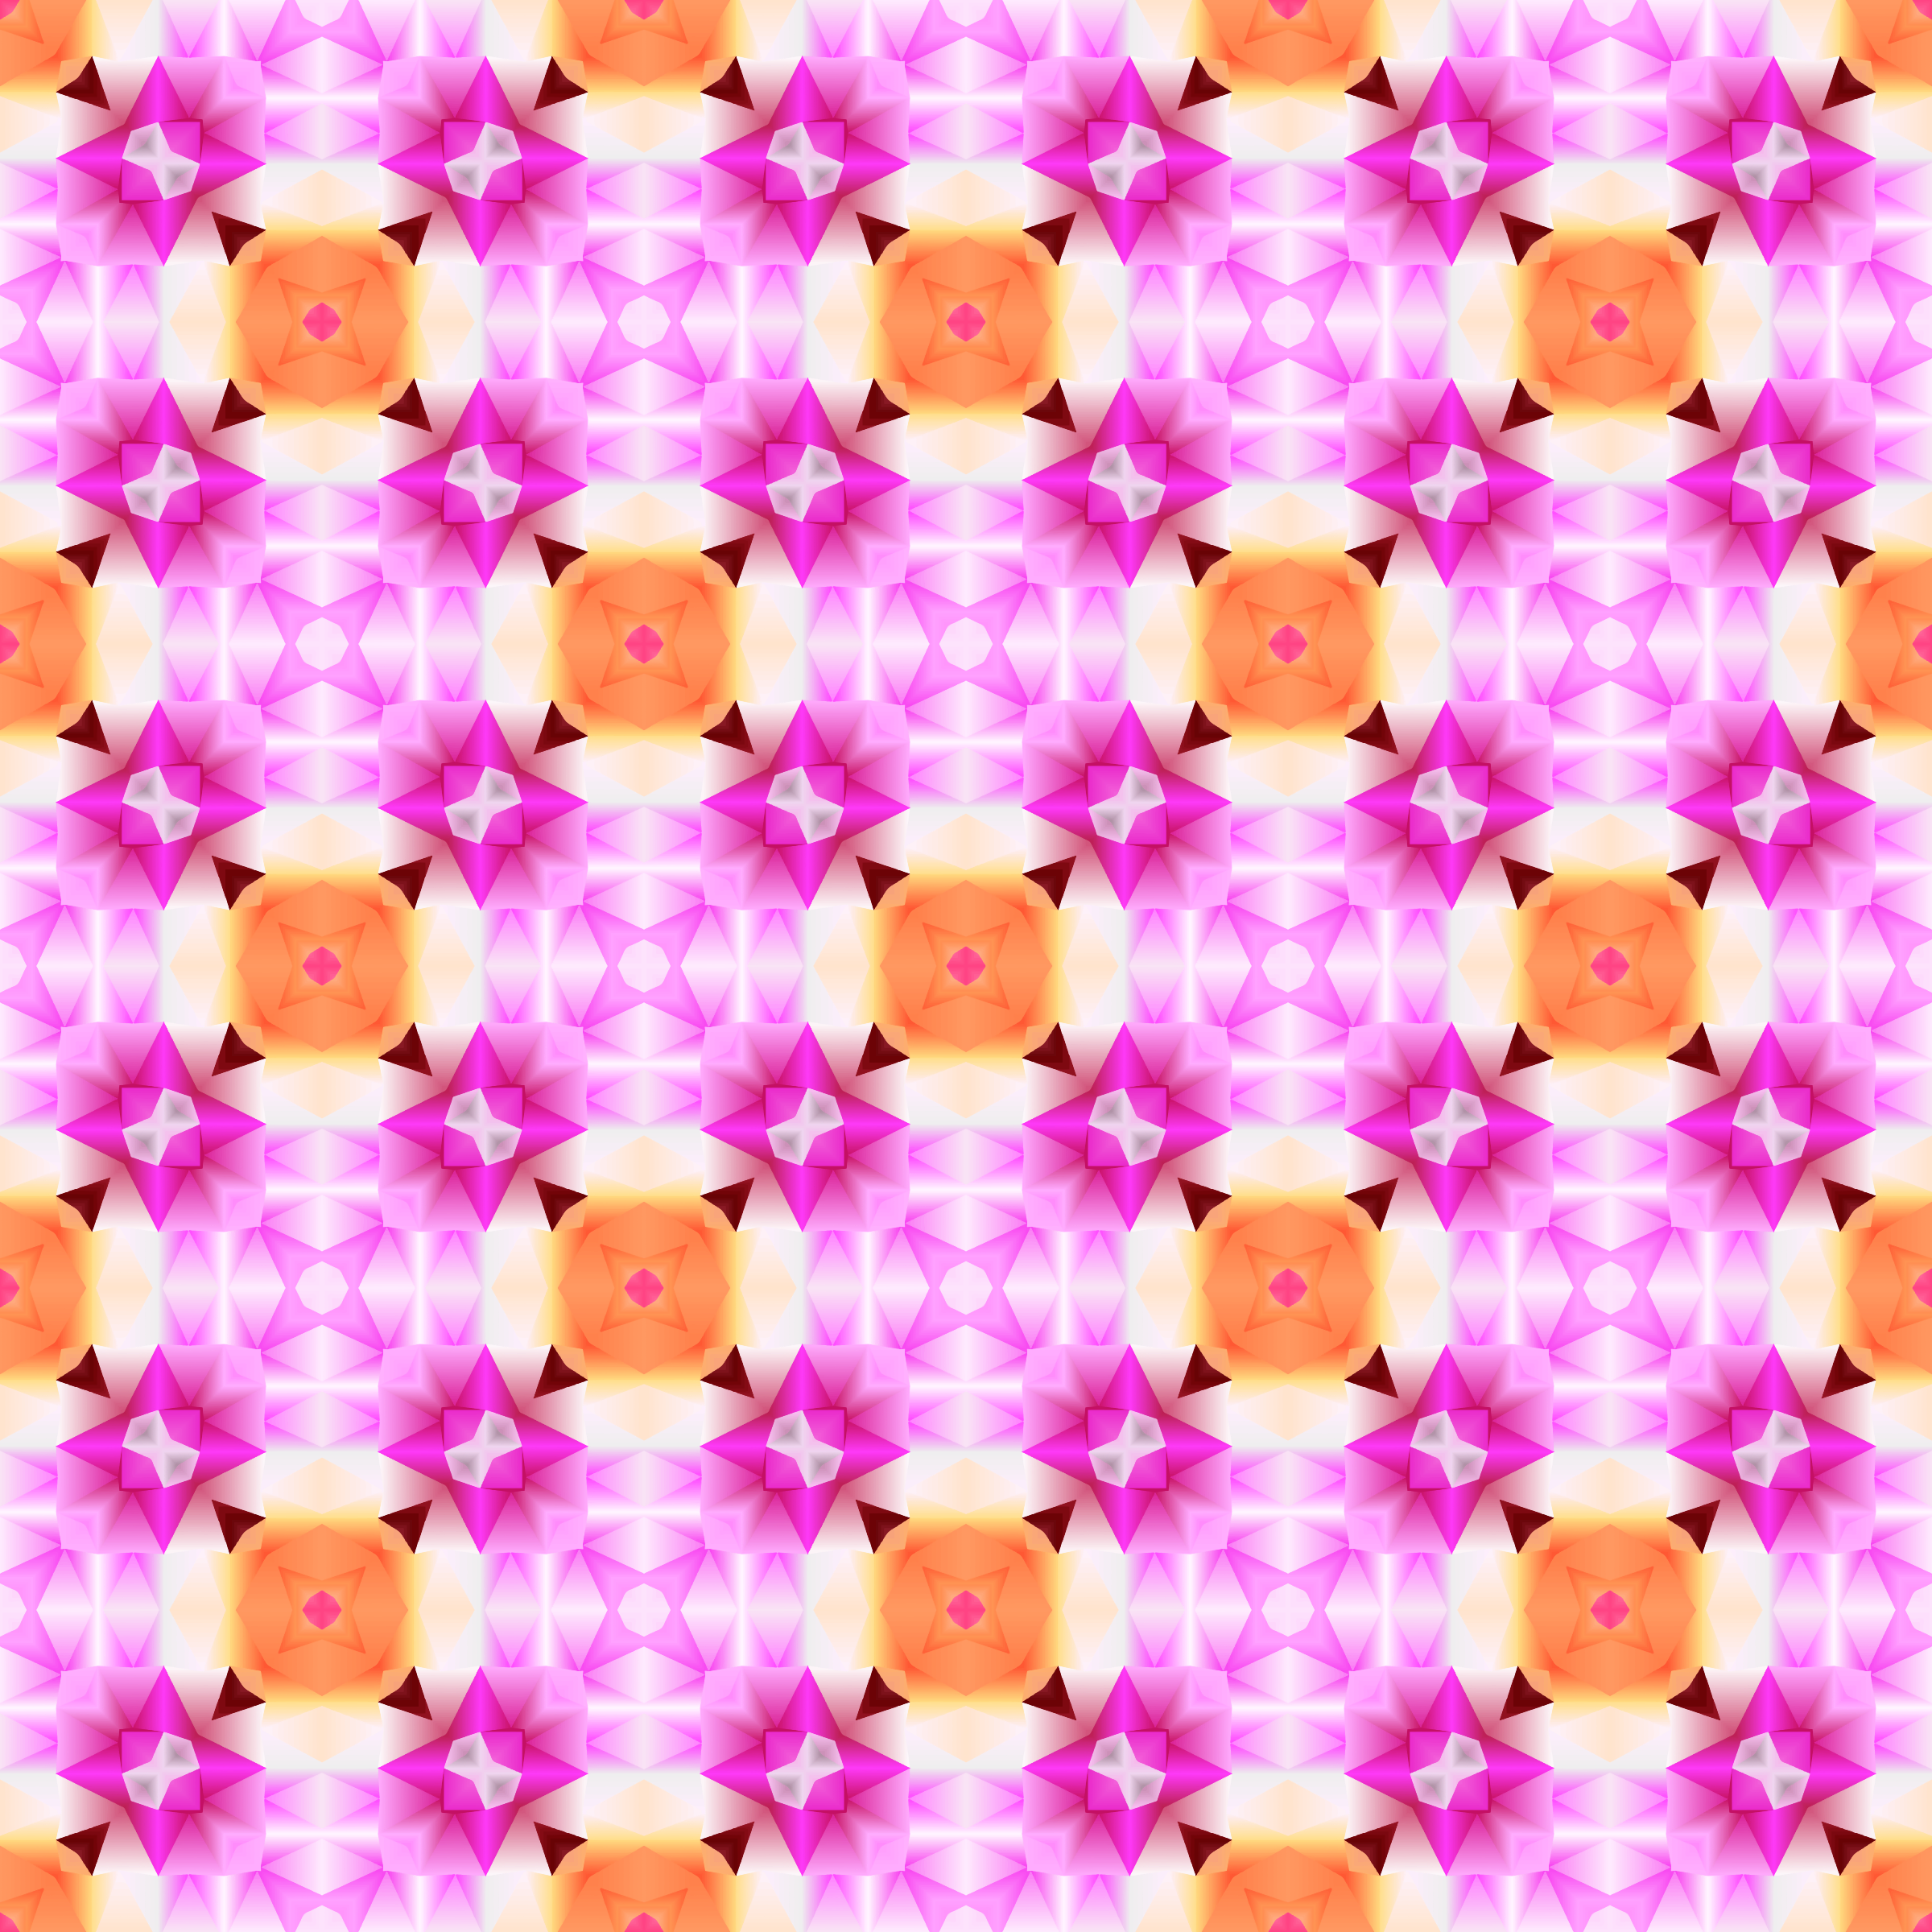 Background pattern 140 (colour 2) by Firkin